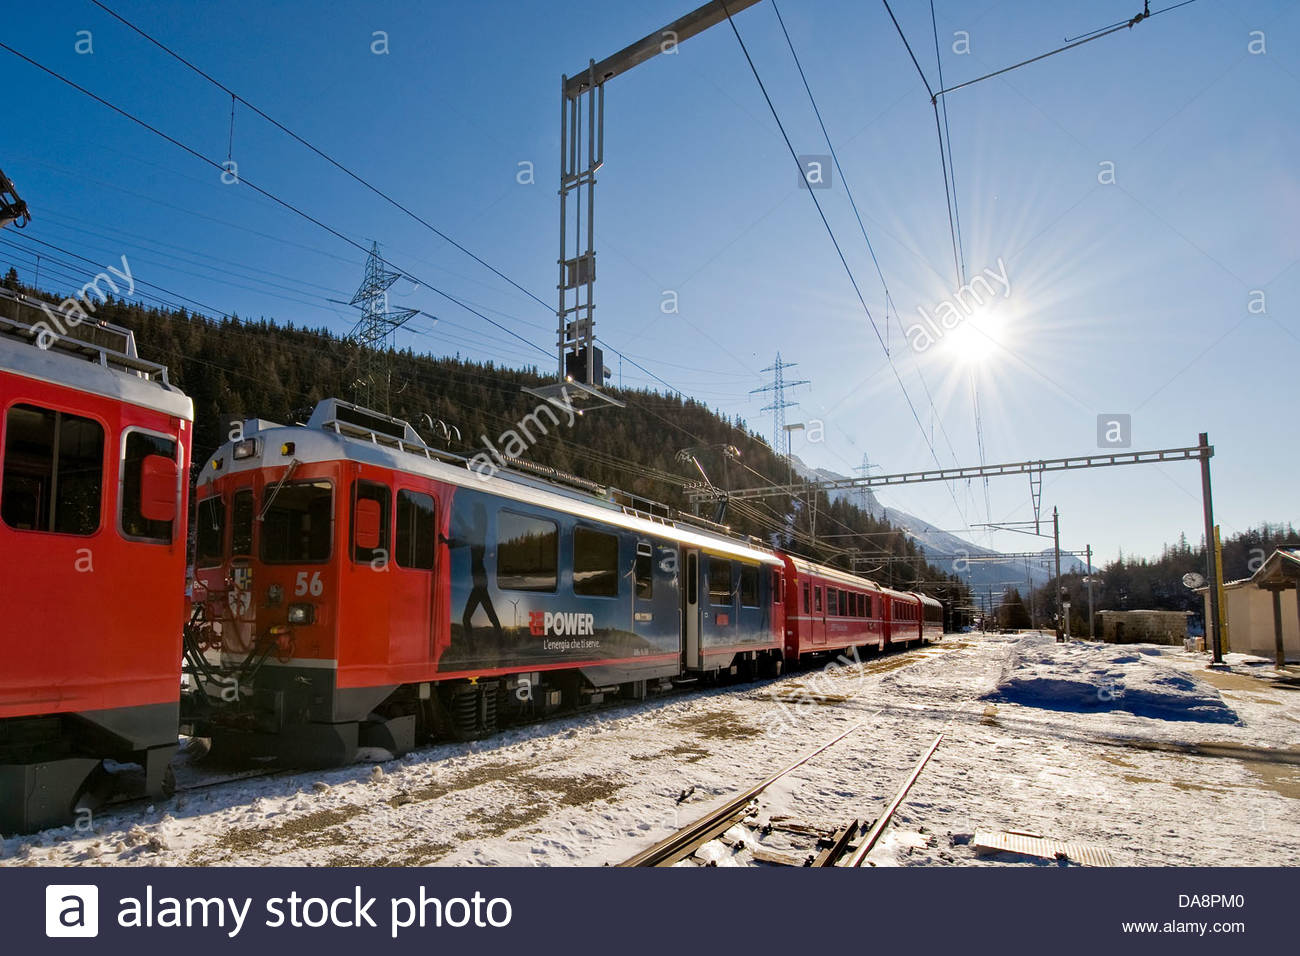 Railway station,Bernina express,Switzerland - Stock Image